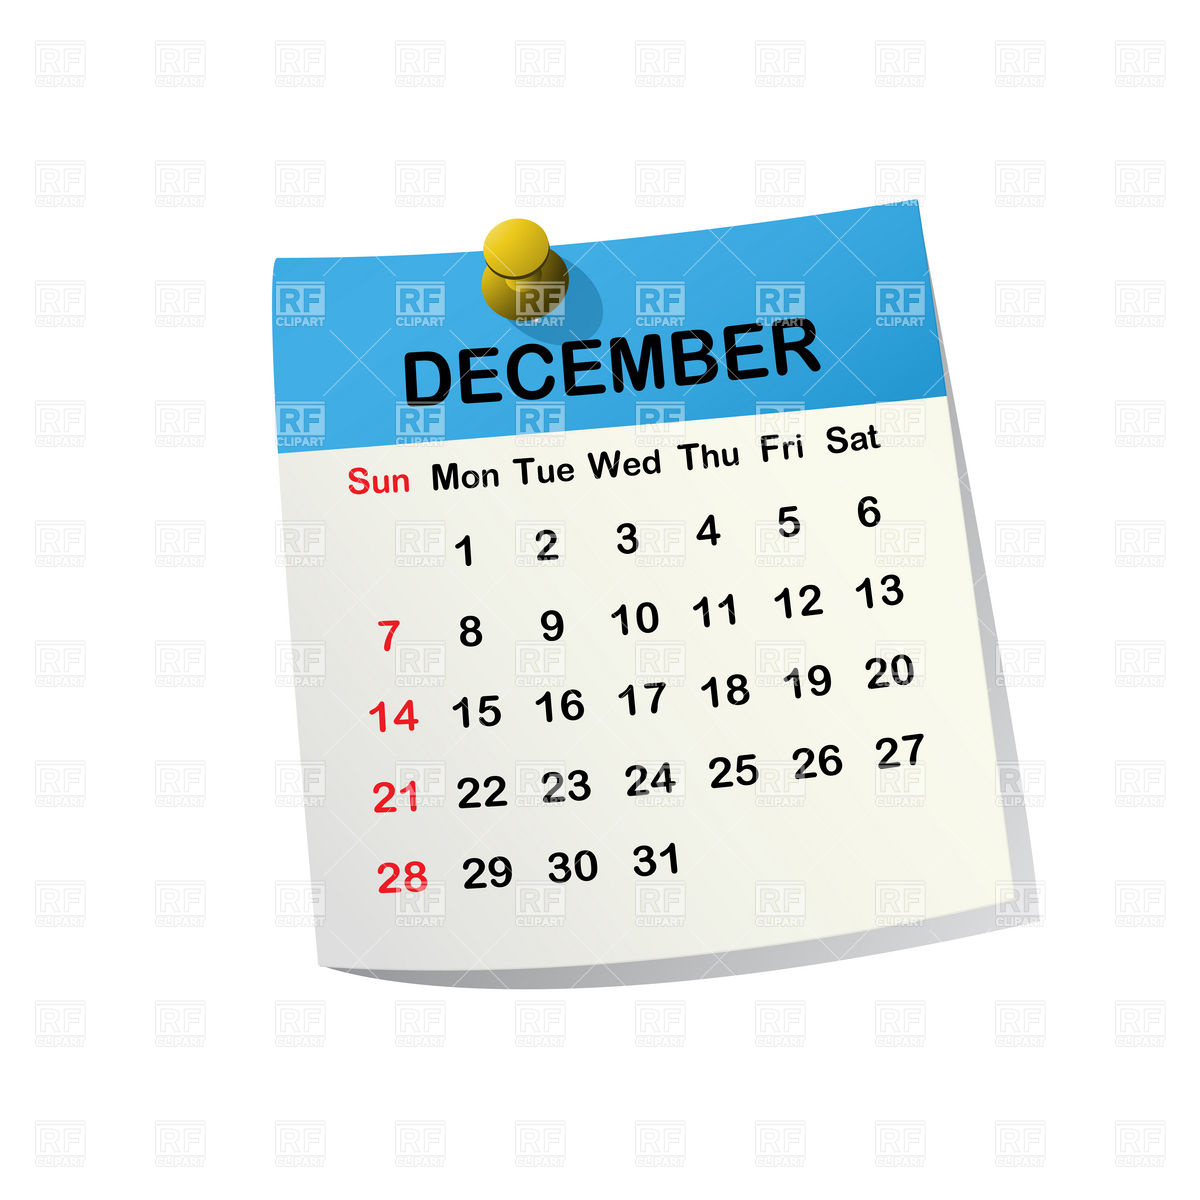 December 2014 month calendar Stock Vector Image.